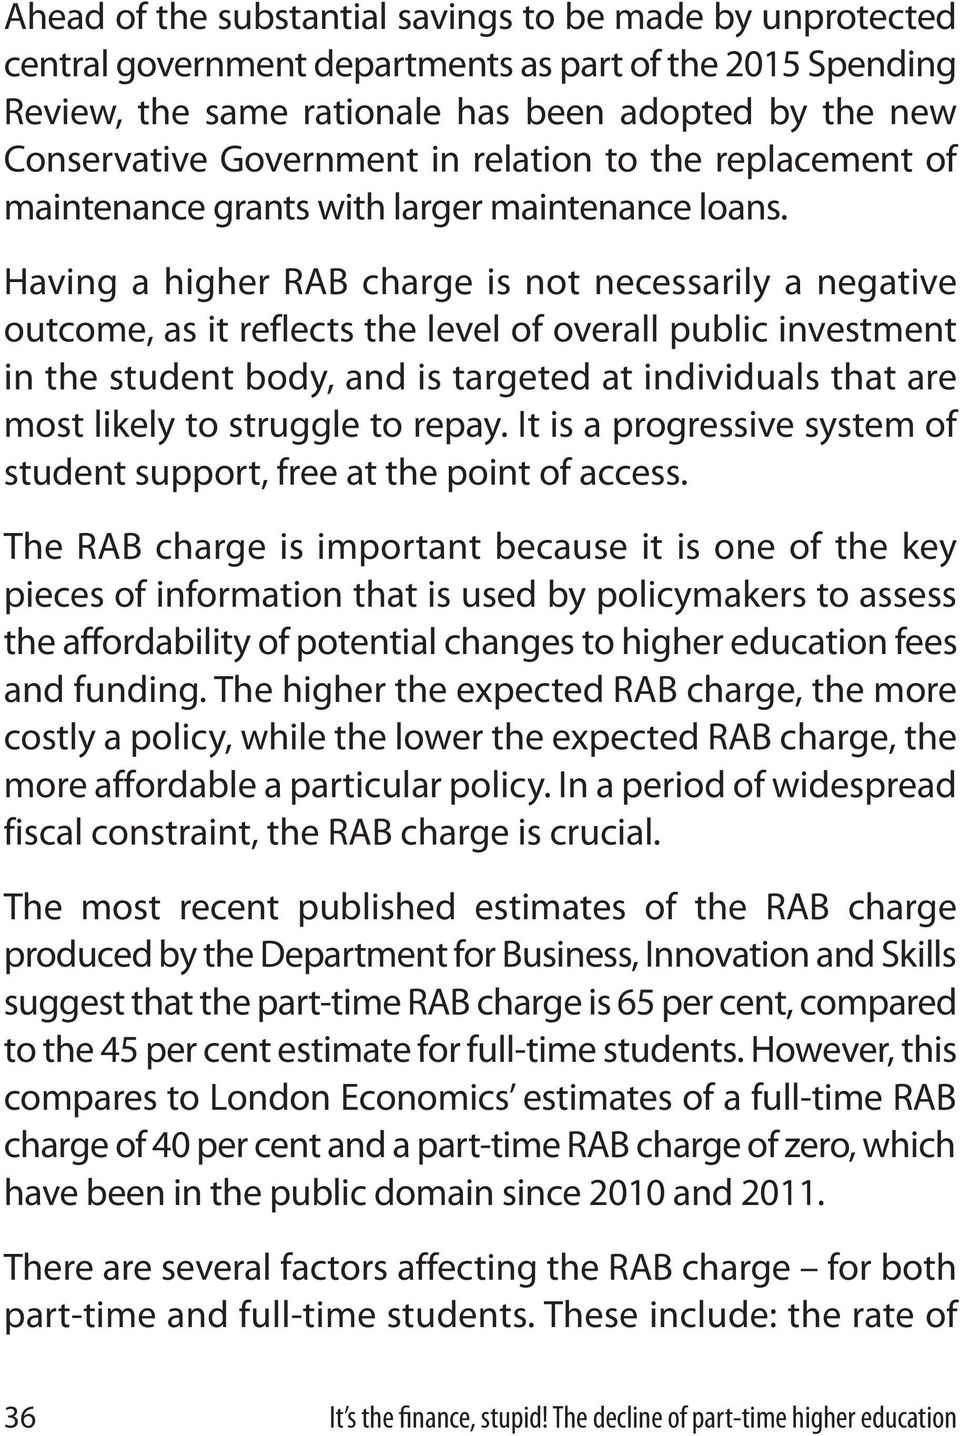 Having a higher RAB charge is not necessarily a negative outcome, as it reflects the level of overall public investment in the student body, and is targeted at individuals that are most likely to